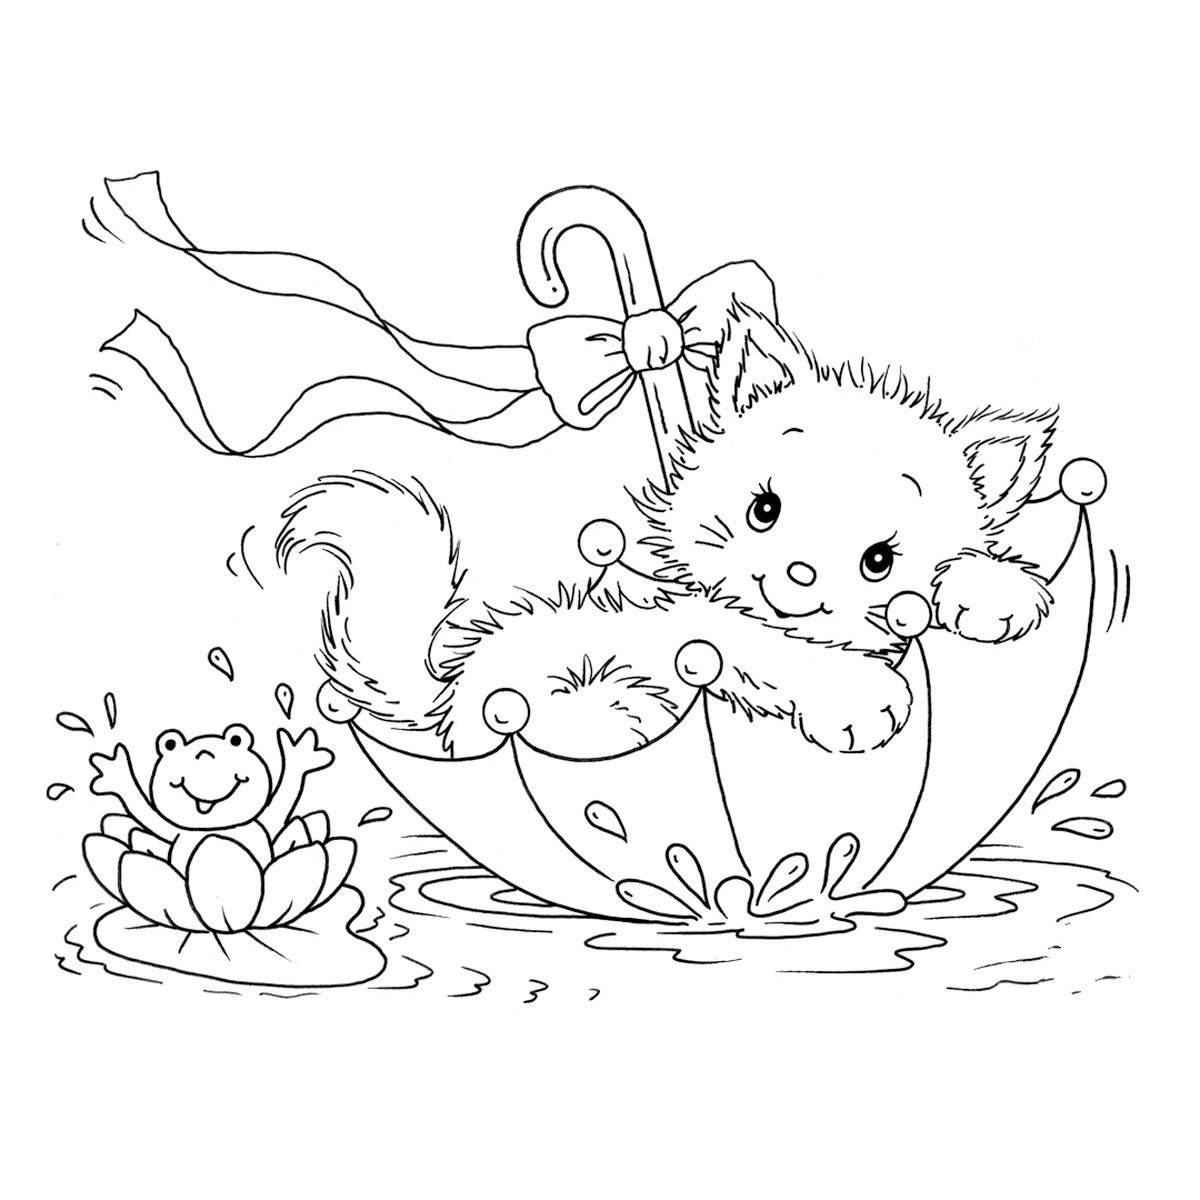 cat colouring pages free cat coloring pages colouring cat pages